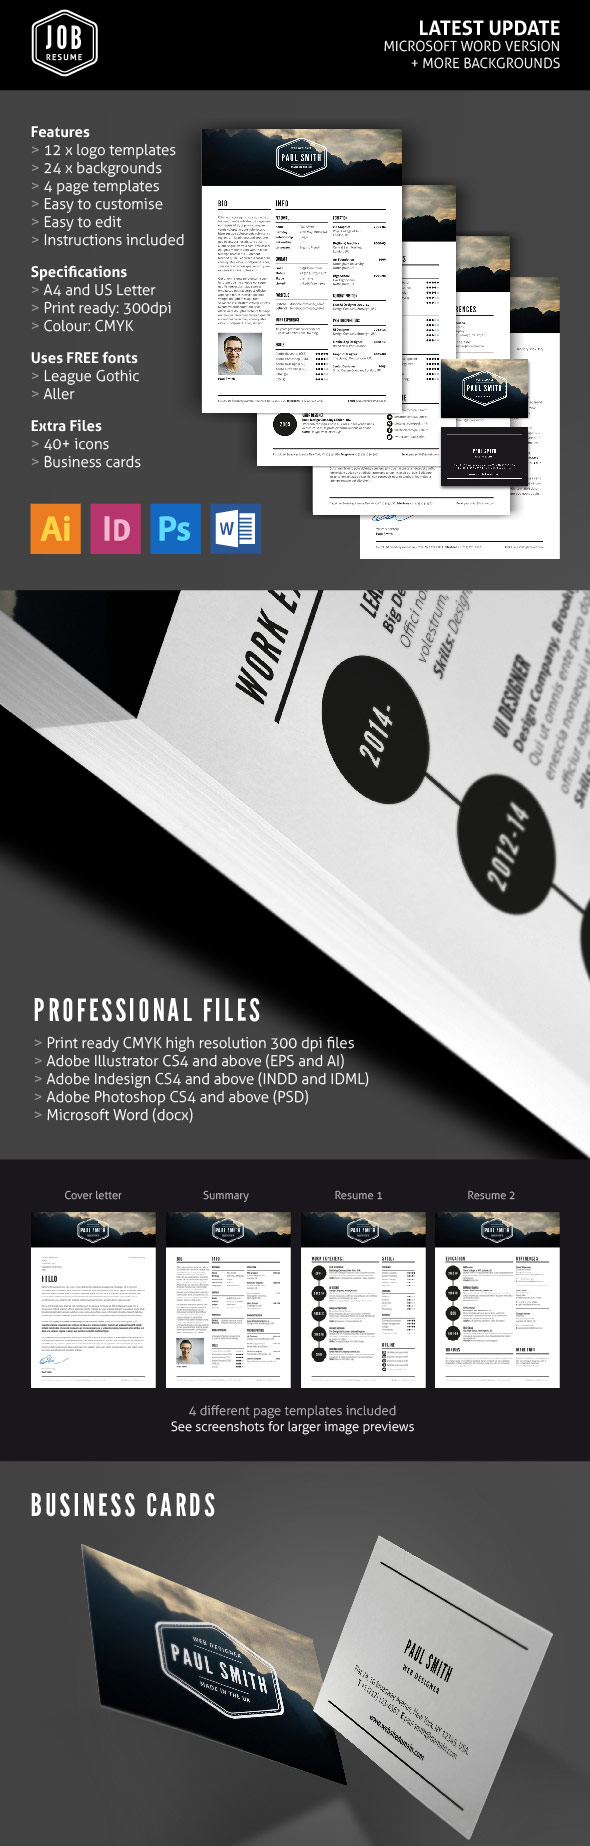 Job Resume Template Set (With Logos & Business Cards)